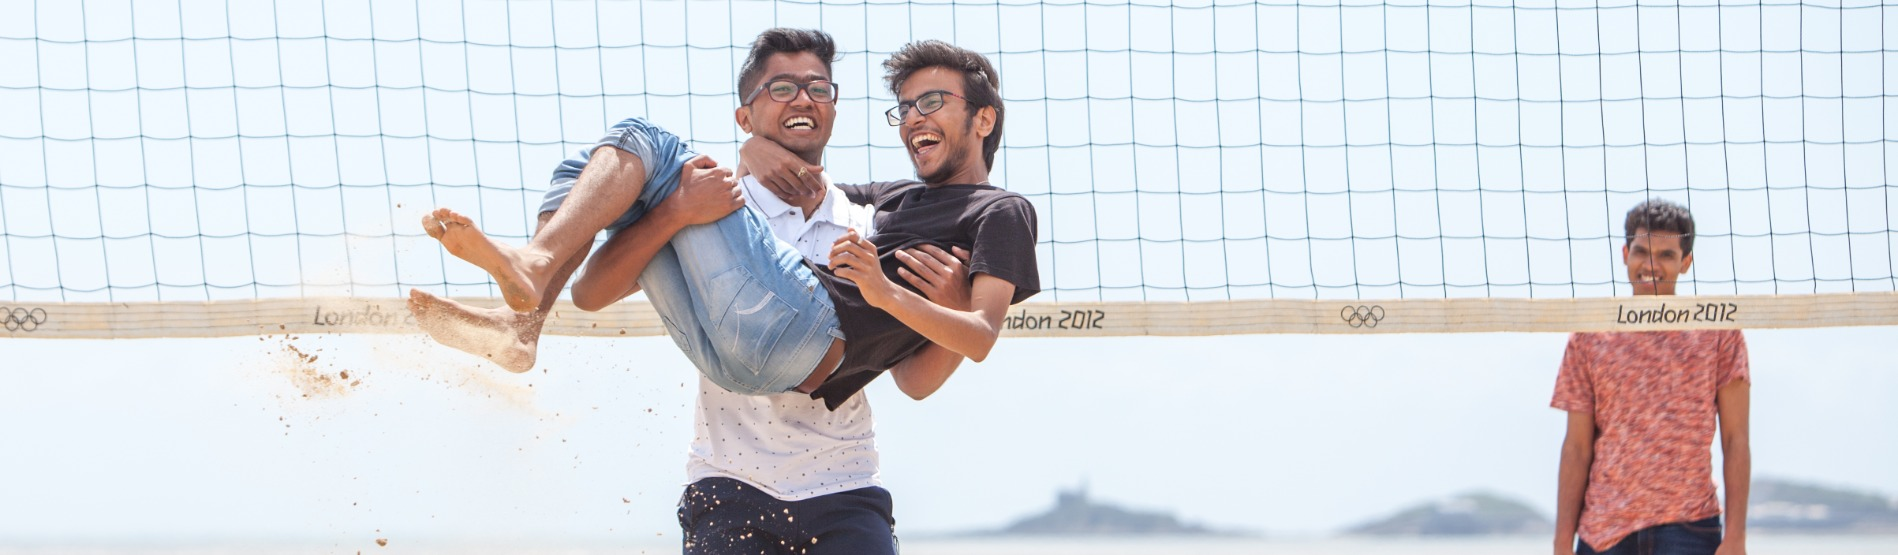 2 International students celebrating at a beach volleyball game in Swansea